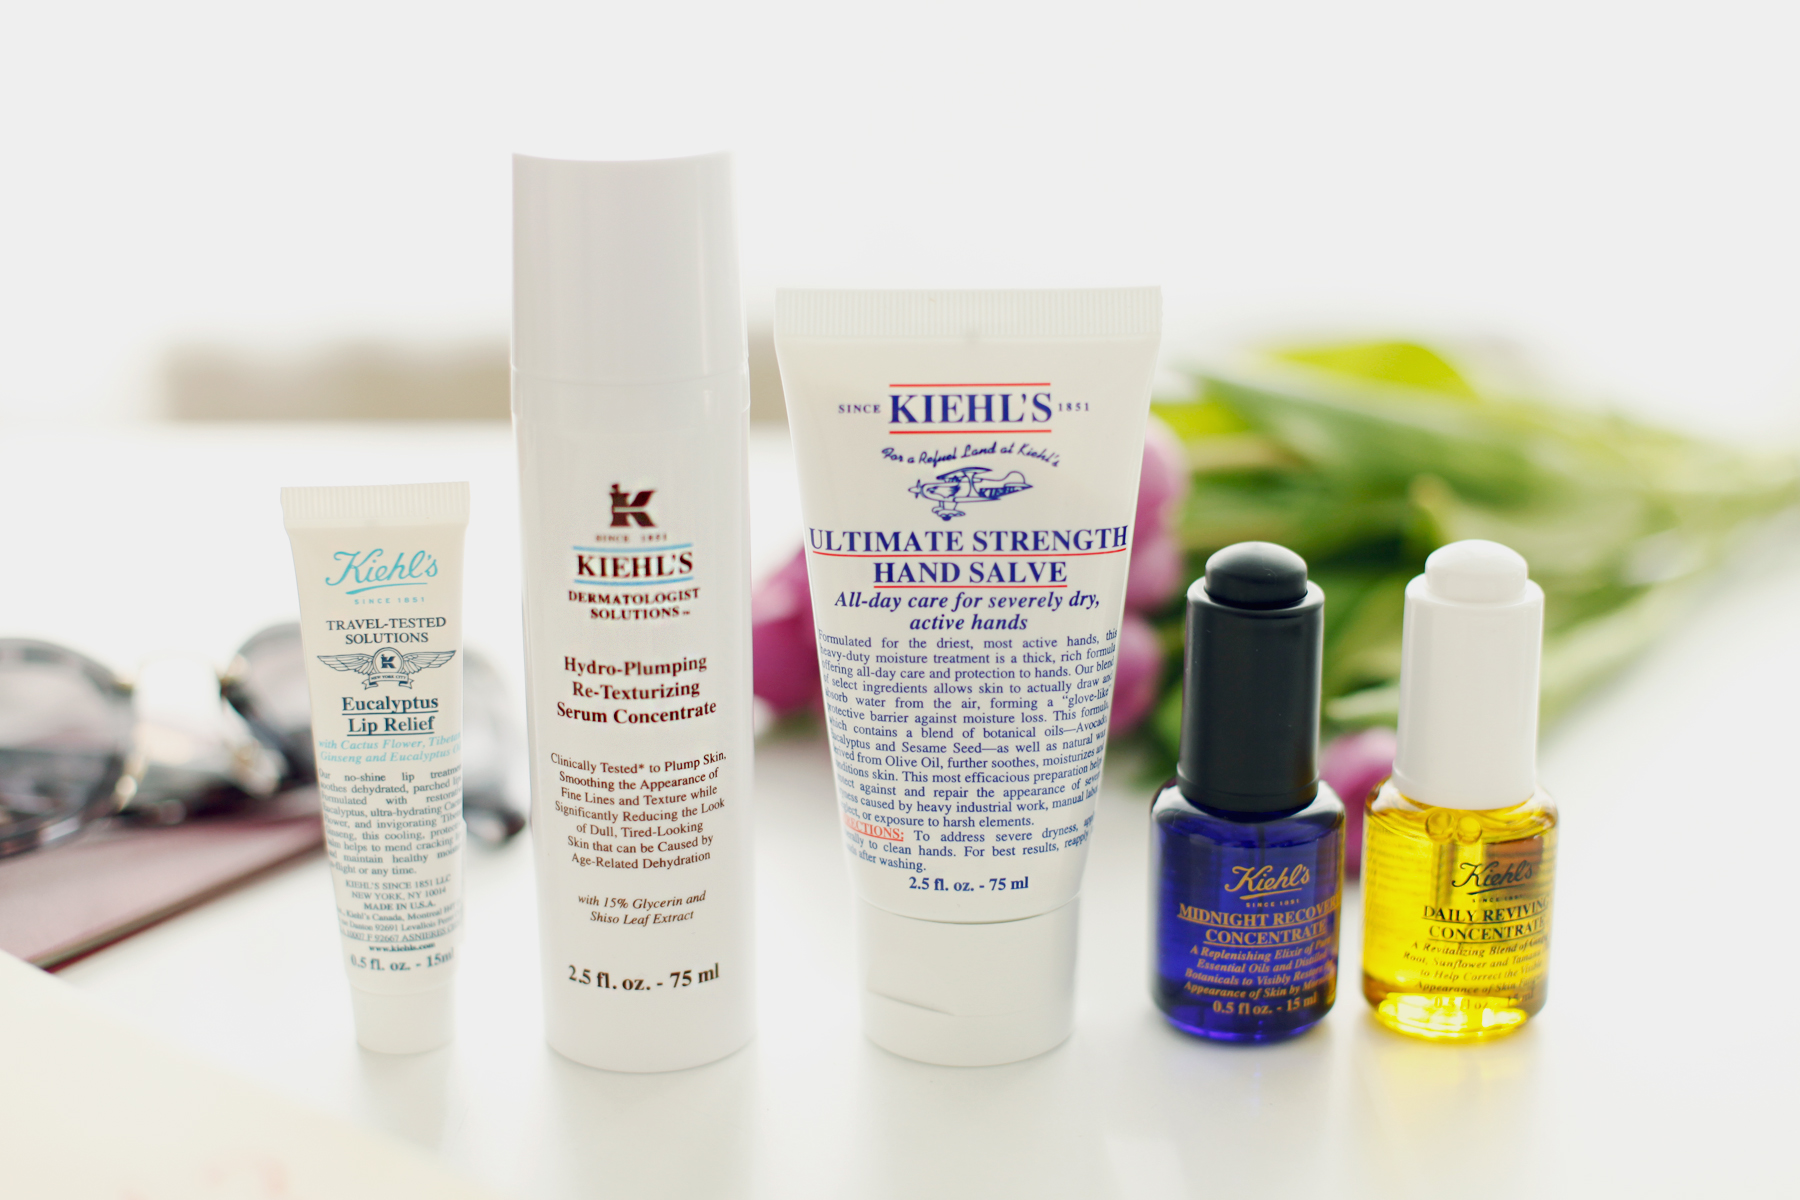 kiehl's travel essentials reise new york city world of kiehl's travelling miniature beauty beautyblogger handgepäck hand luggage sunglasses miu miu beauty tipps und tricks daily revival cats & dogs ricarda schernus beautyblogger düsseldorf 5